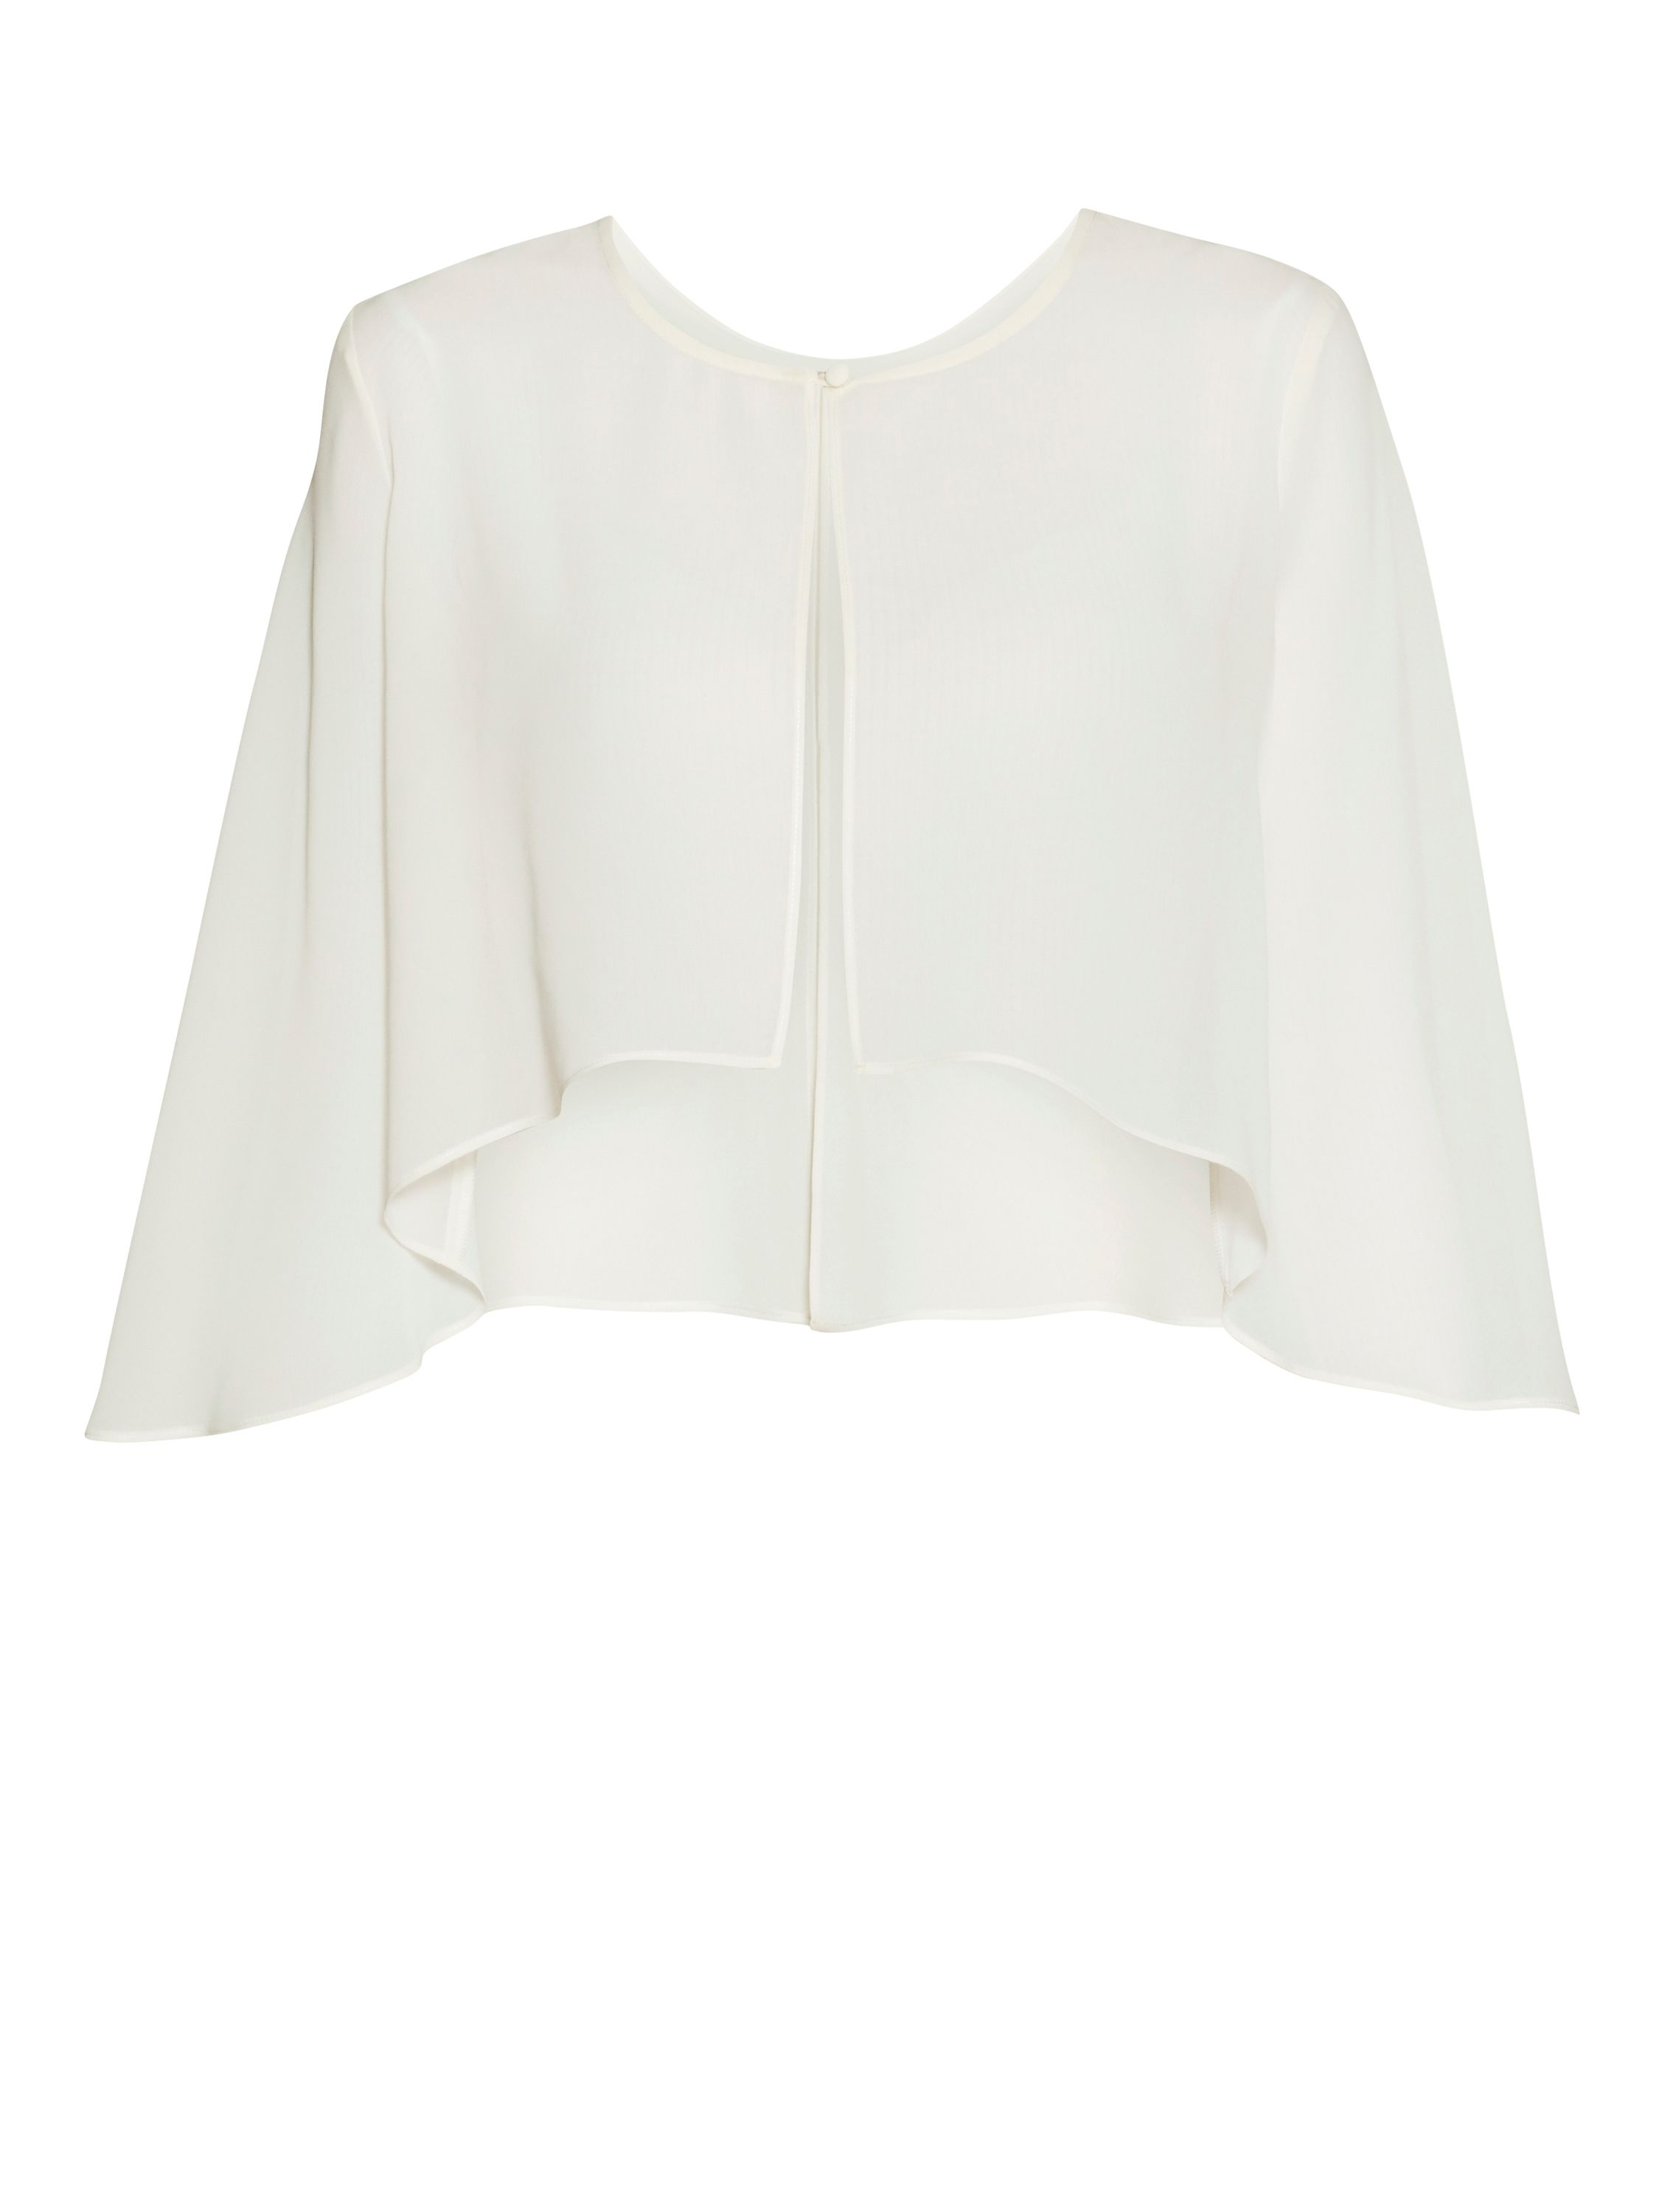 Gina Bacconi Chiffon cape with open back detail, Cream